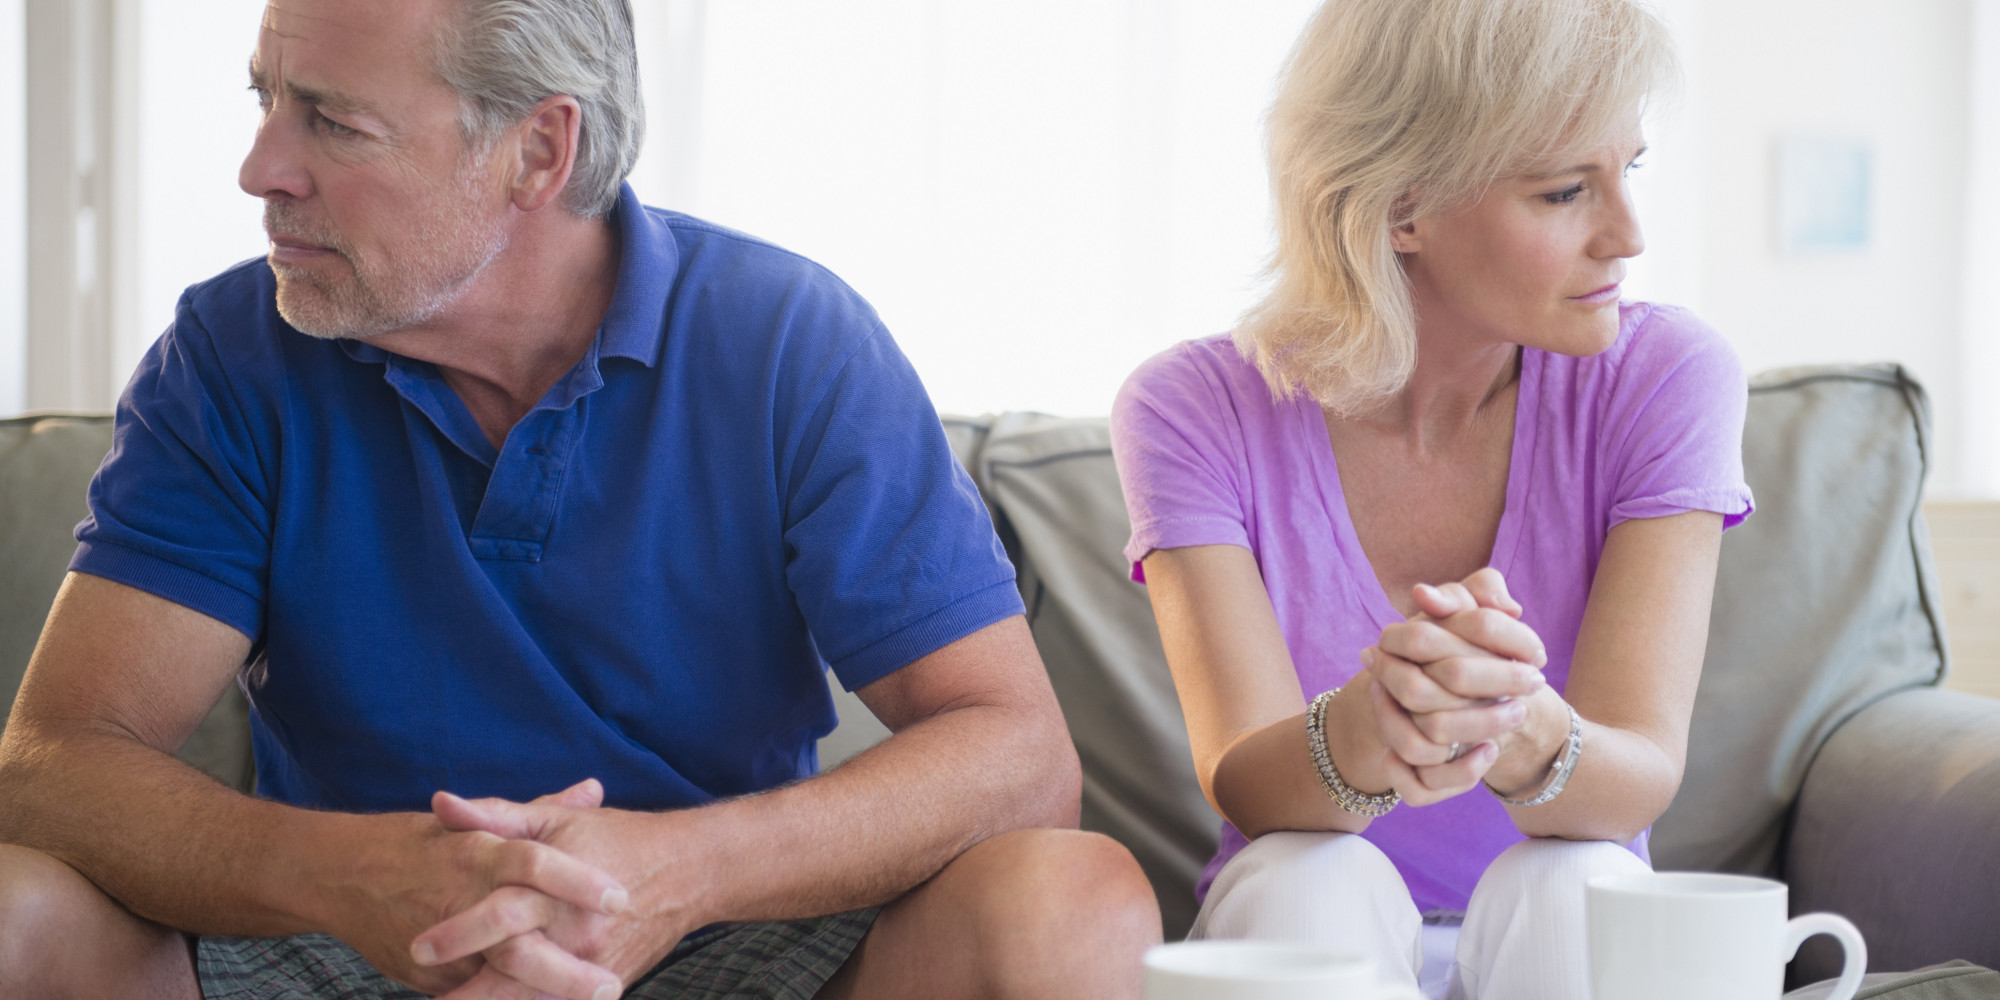 sex addiction counseling new jersey